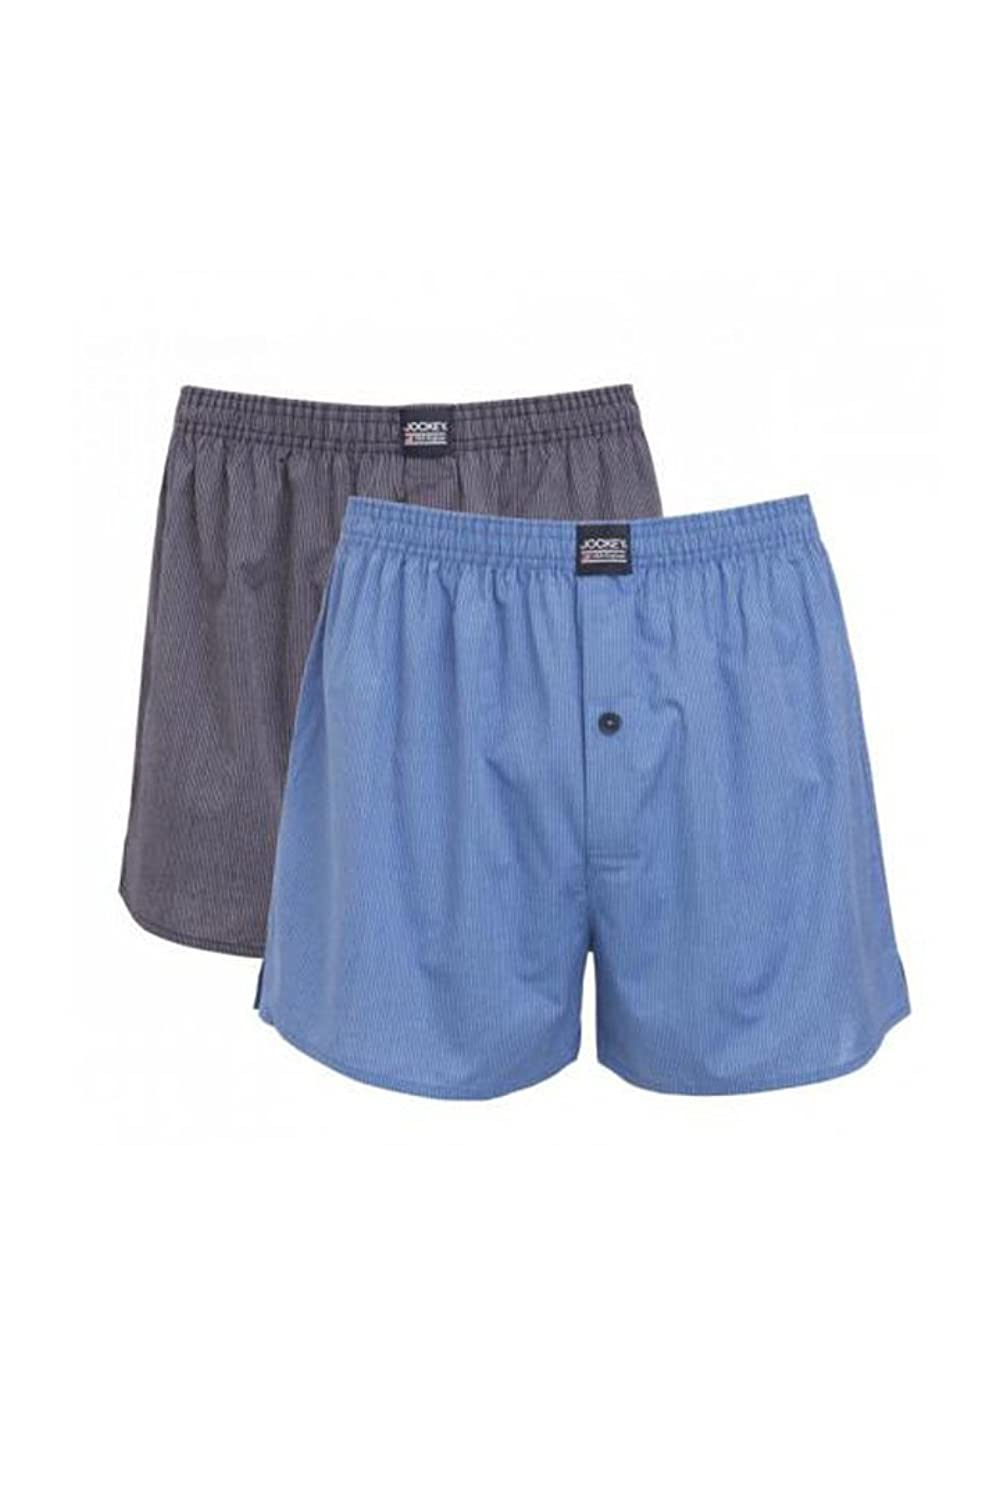 Jockey 4300 Boxer Short 4er Pack - star blue S (4) bis 6XL (12)